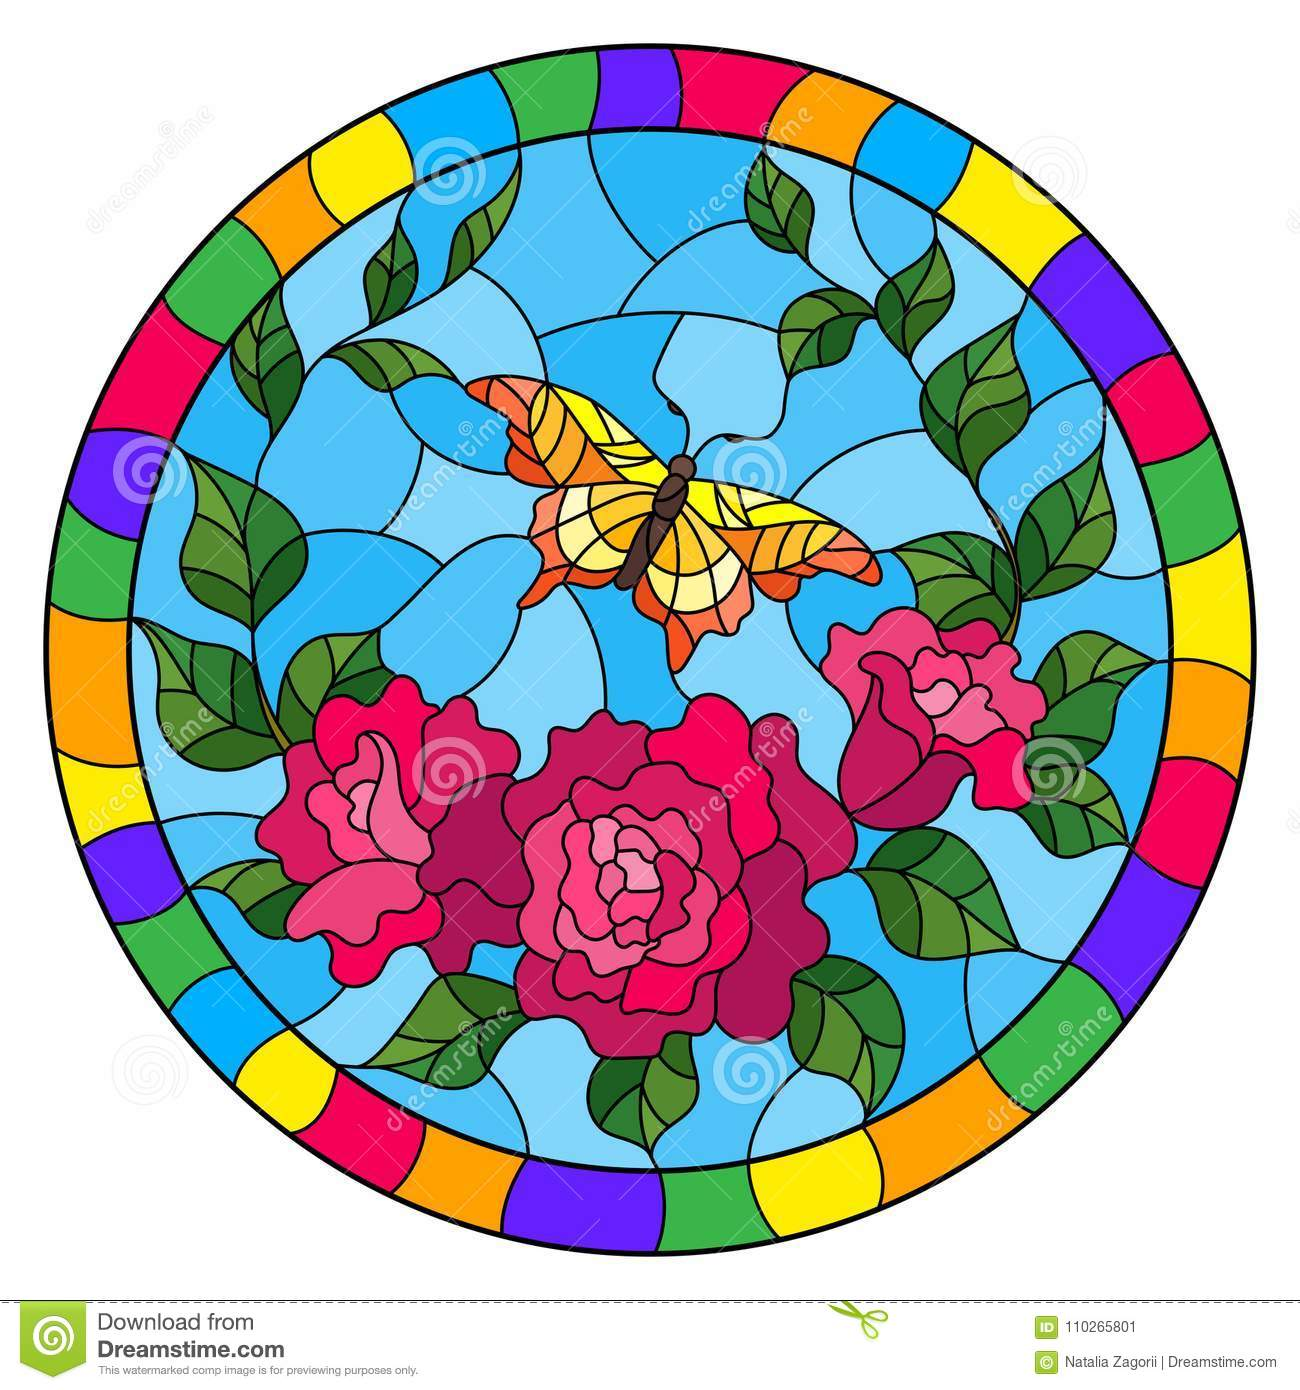 Stained glass illustration with red flowers and leaves of pink rose, and yellow butterfly round picture in a bright frame